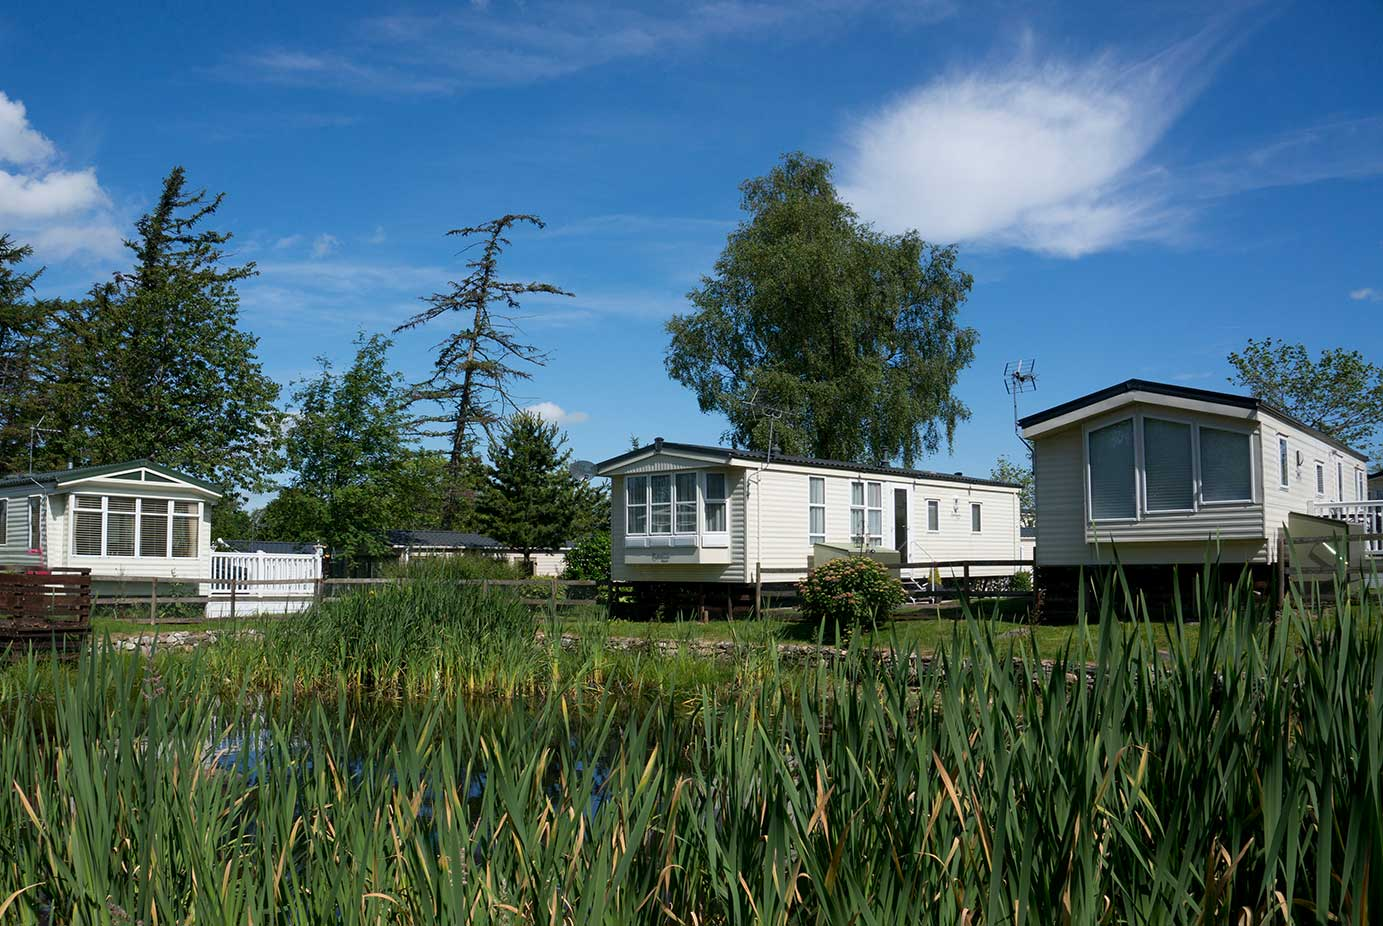 white rose caravan park hutton sessay thirsk Caravan park sexten it is by observing nature that feelings arise japanese saying caravan park sexten - best wellness camping in italy read more cosmetic line by rossonero.